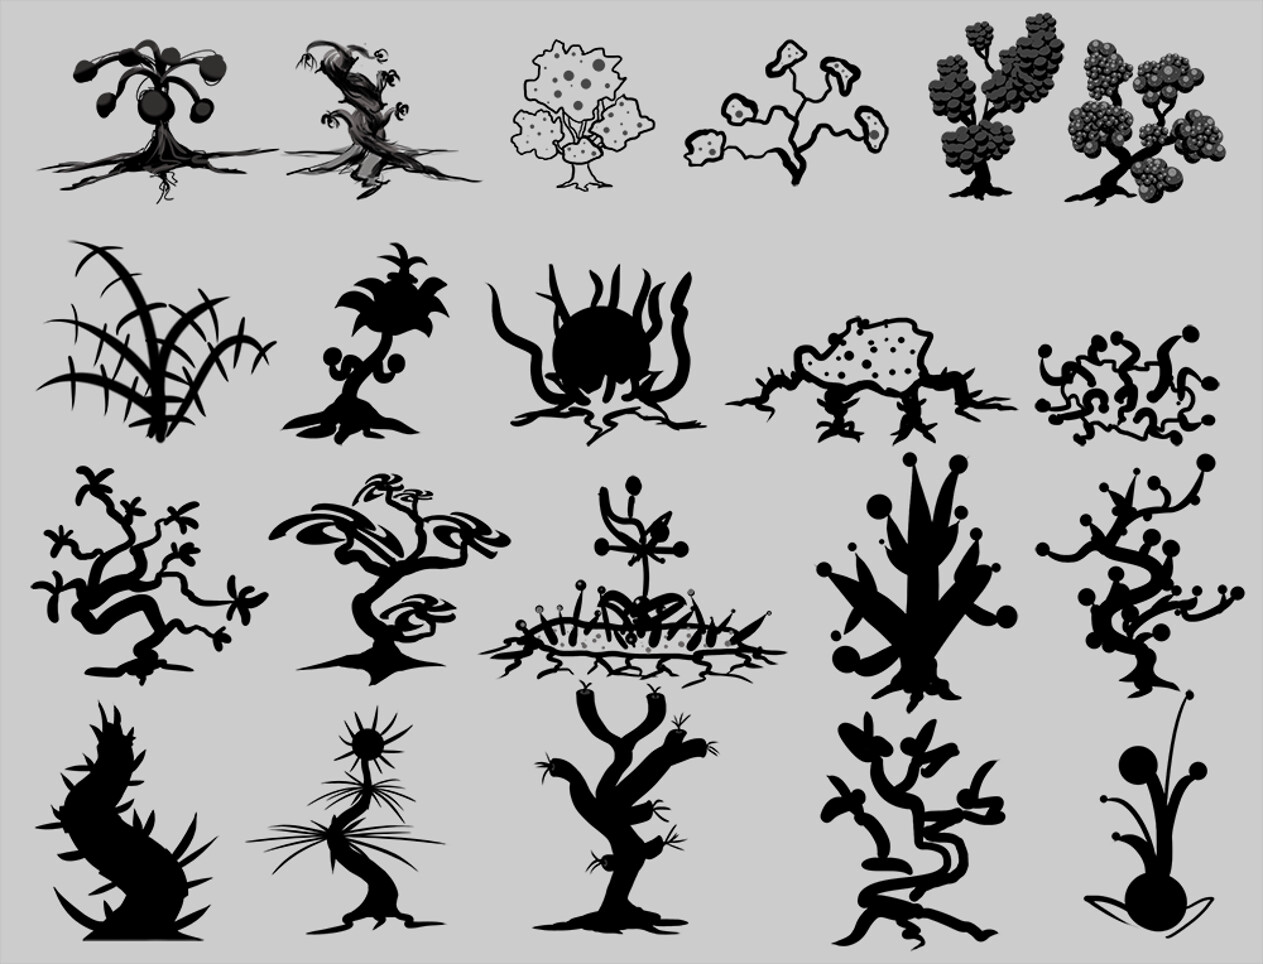 Alien Plant life silhouettes based mostly on spheres